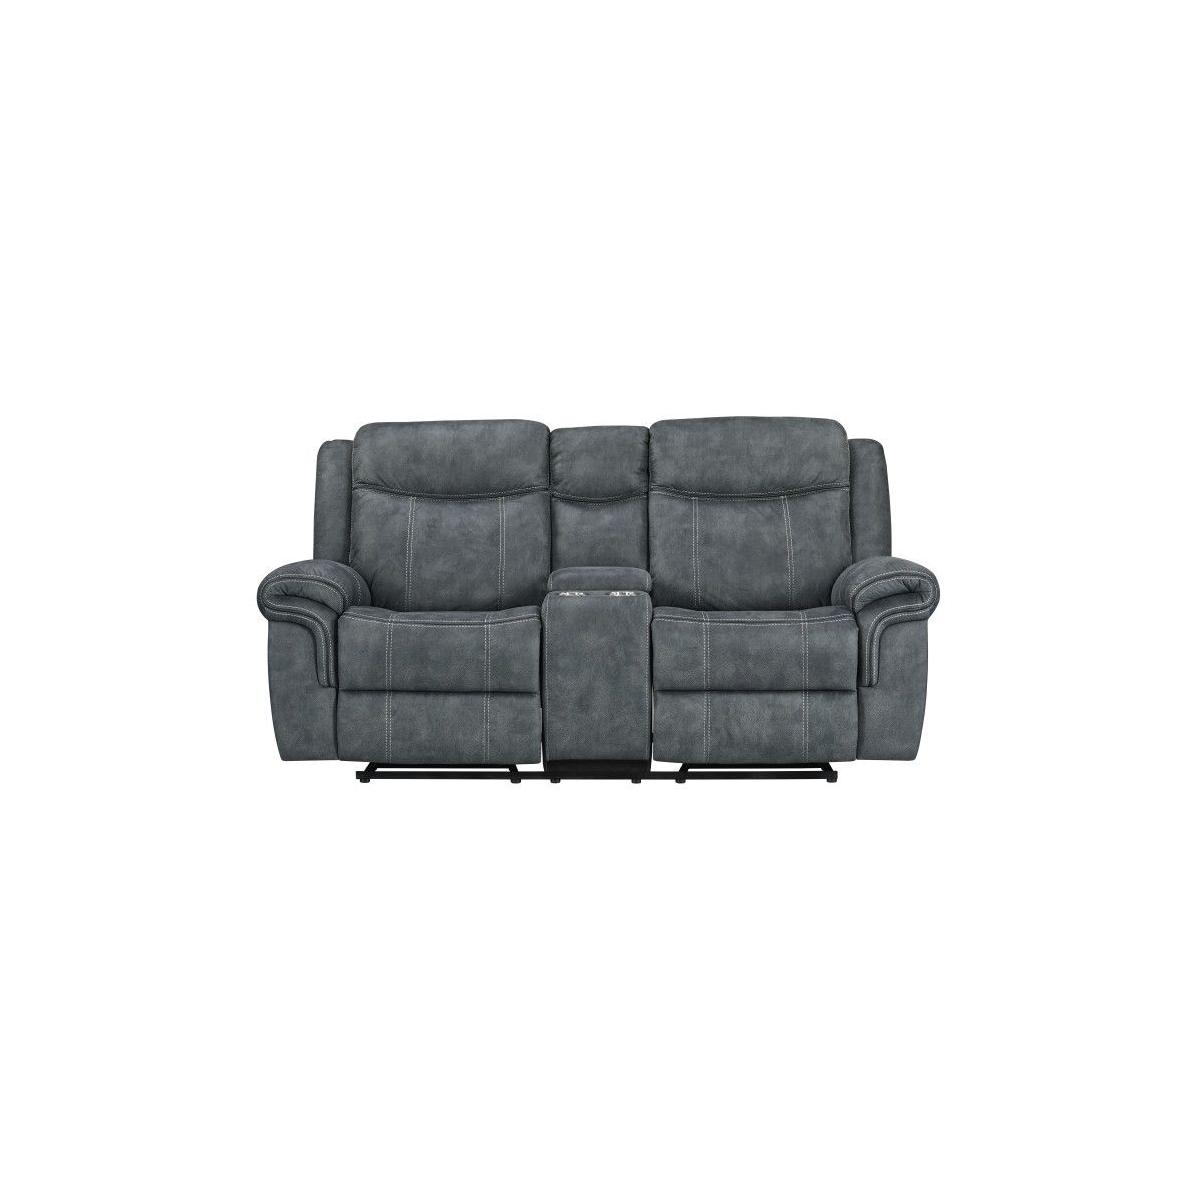 Knoxville Grey Glider Loveseat with Console, Charcoal